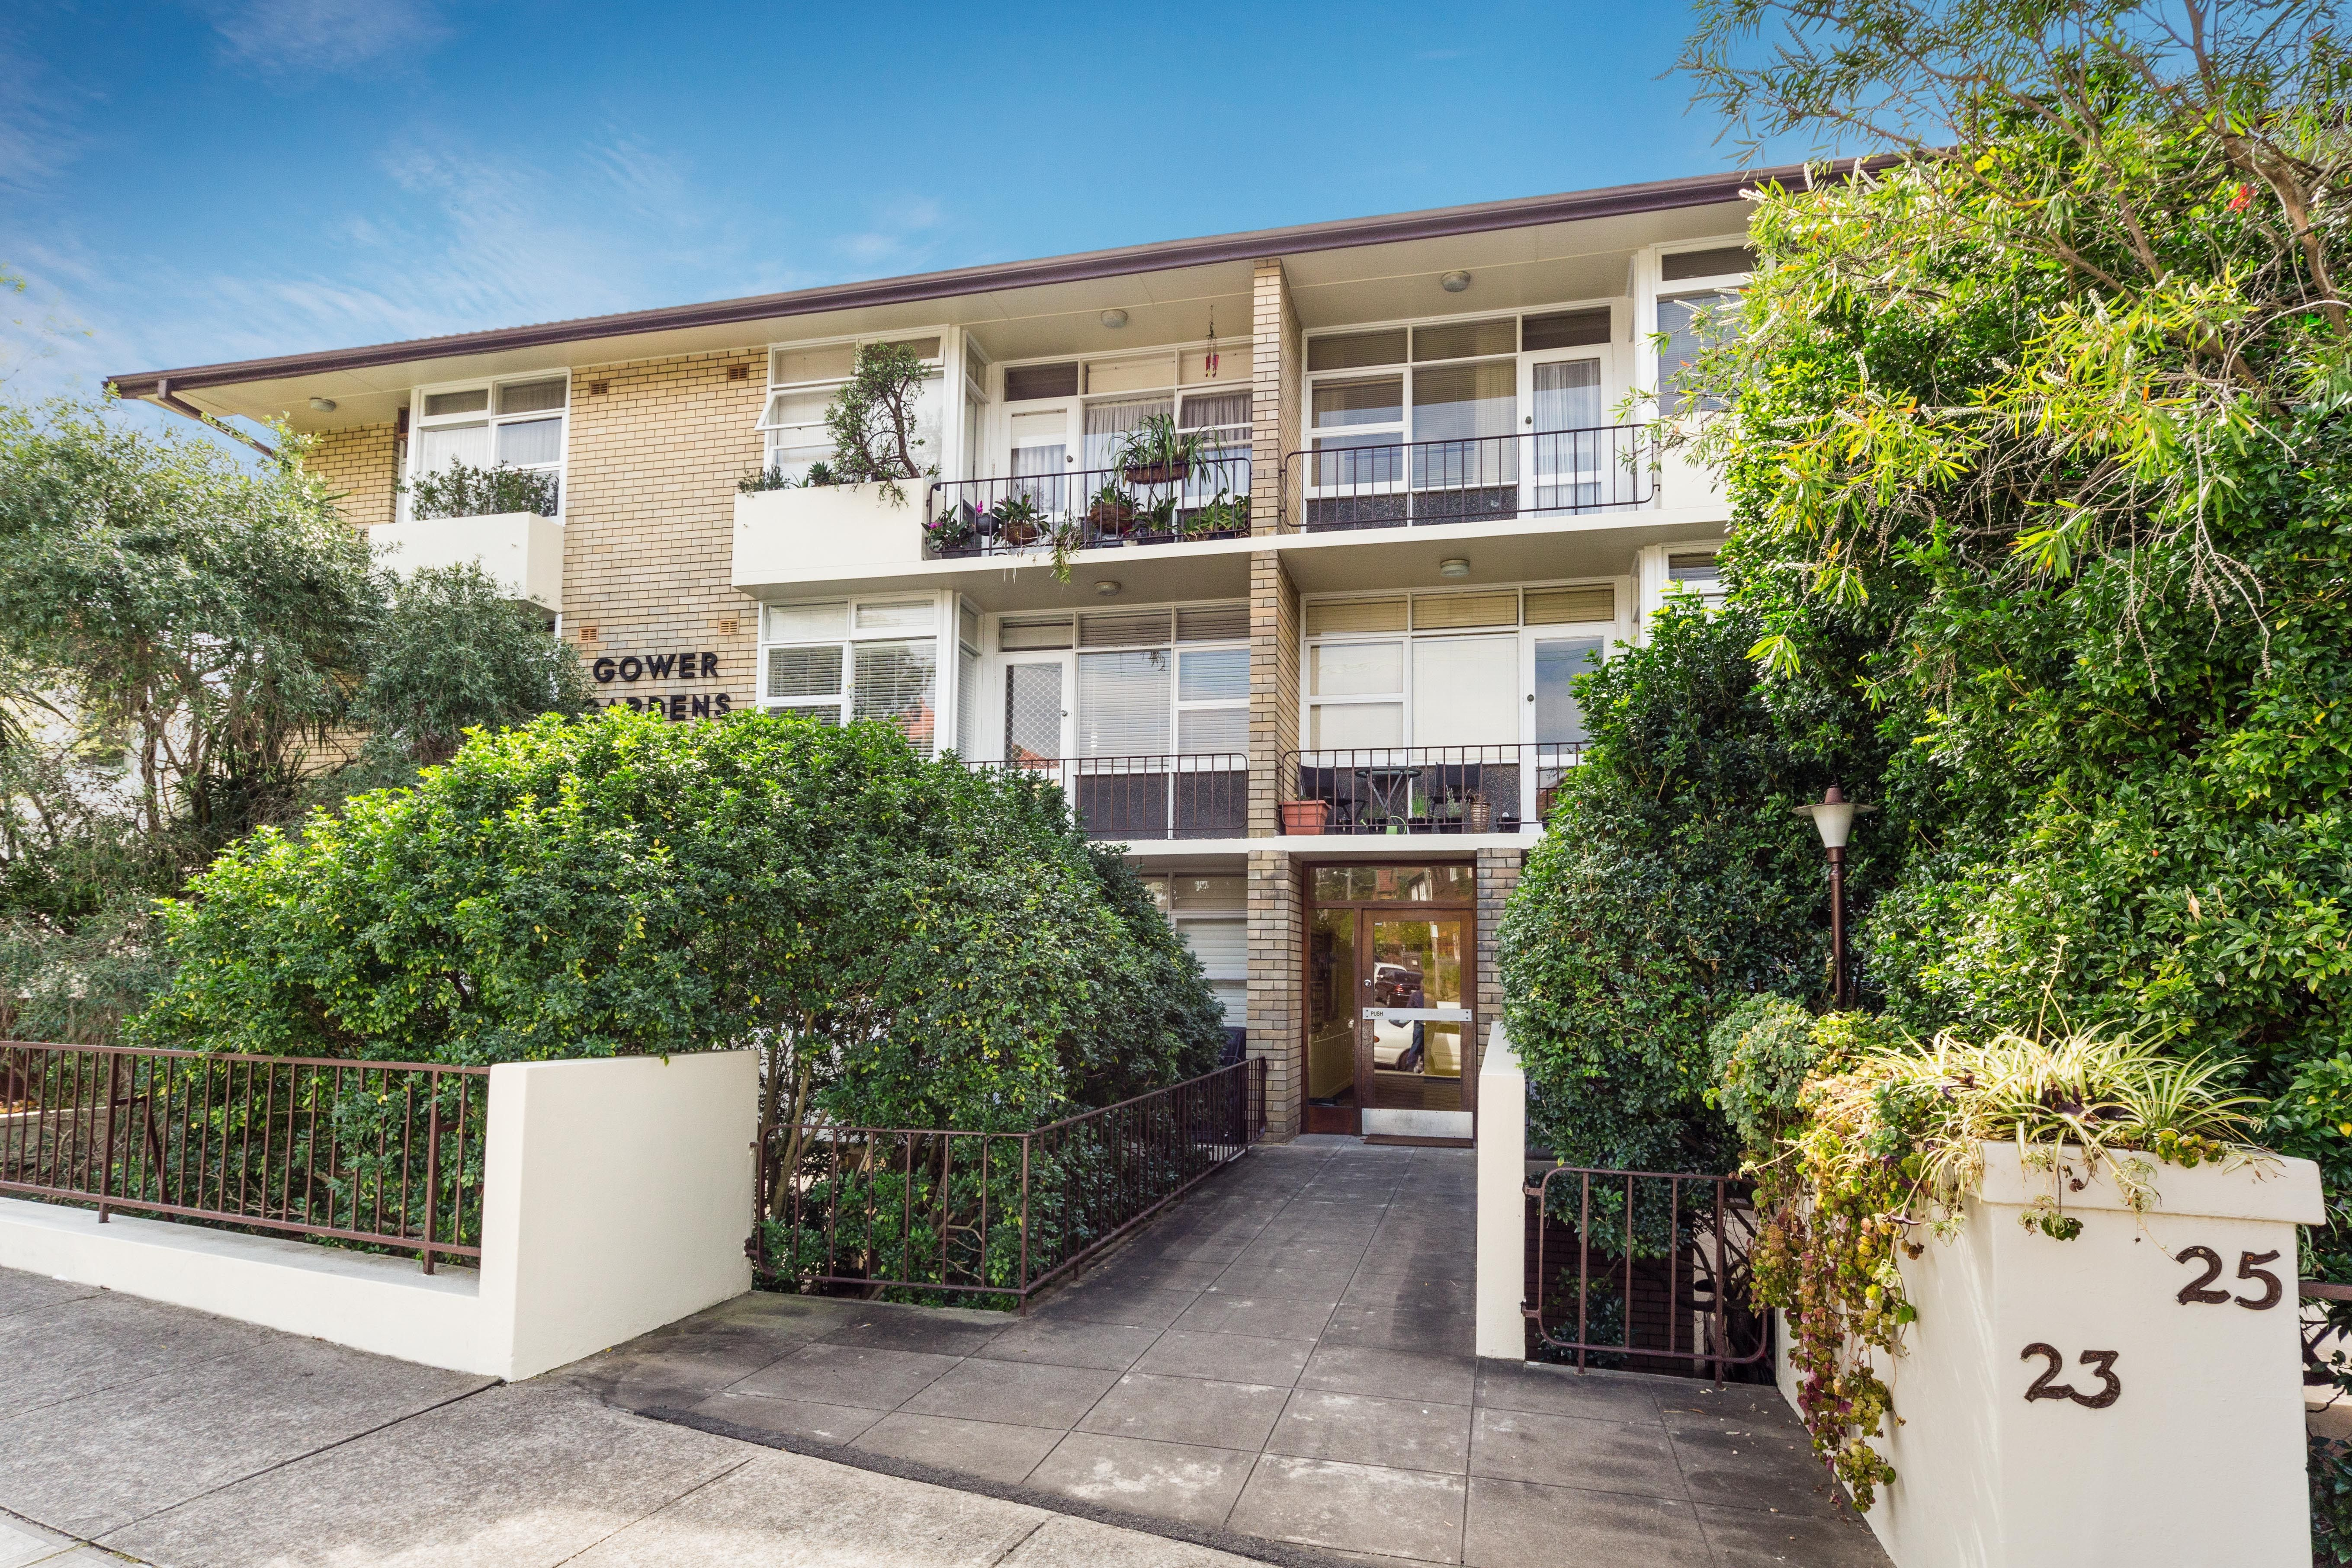 17/23-25 Gower Street, Summer Hill NSW 2130